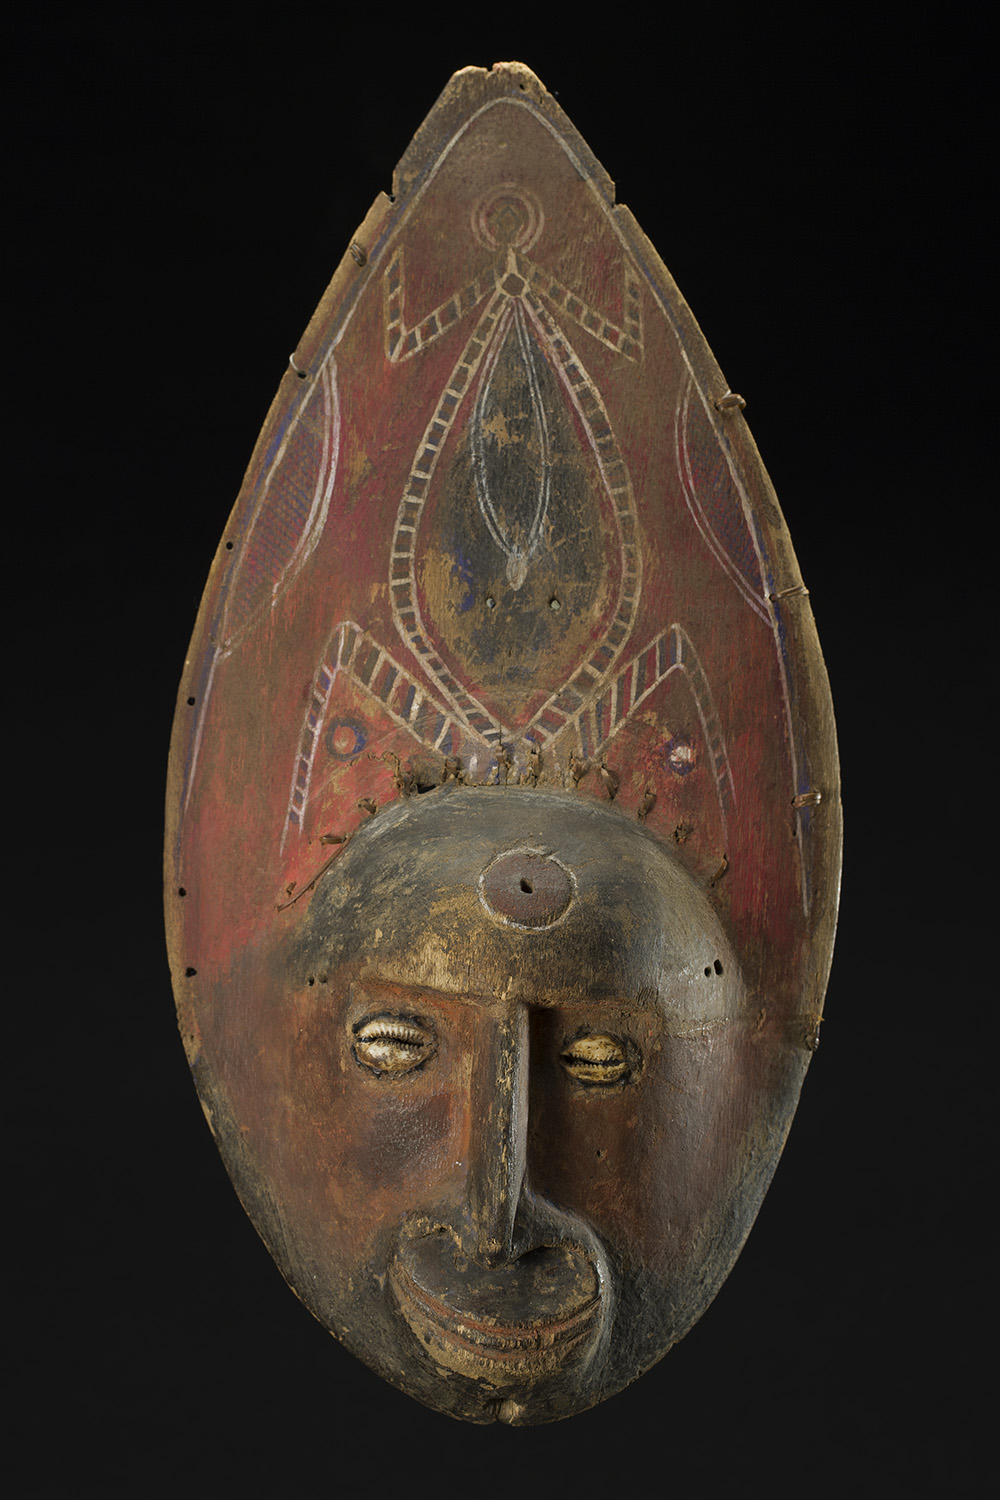 Yam Mask, Abelam People, Wosera Subgroup, East Sepik Province, PNG, Ex: Michael Hamson, Jolika Collection, John and Marcia Friede  , Early 20th C. Wood, shells, and pigment 16 x 8 x 3 inches 40.6 x 20.3 x 7.6 cm w/ stand: 19.5 x 8 x 4.5 inches M 265s